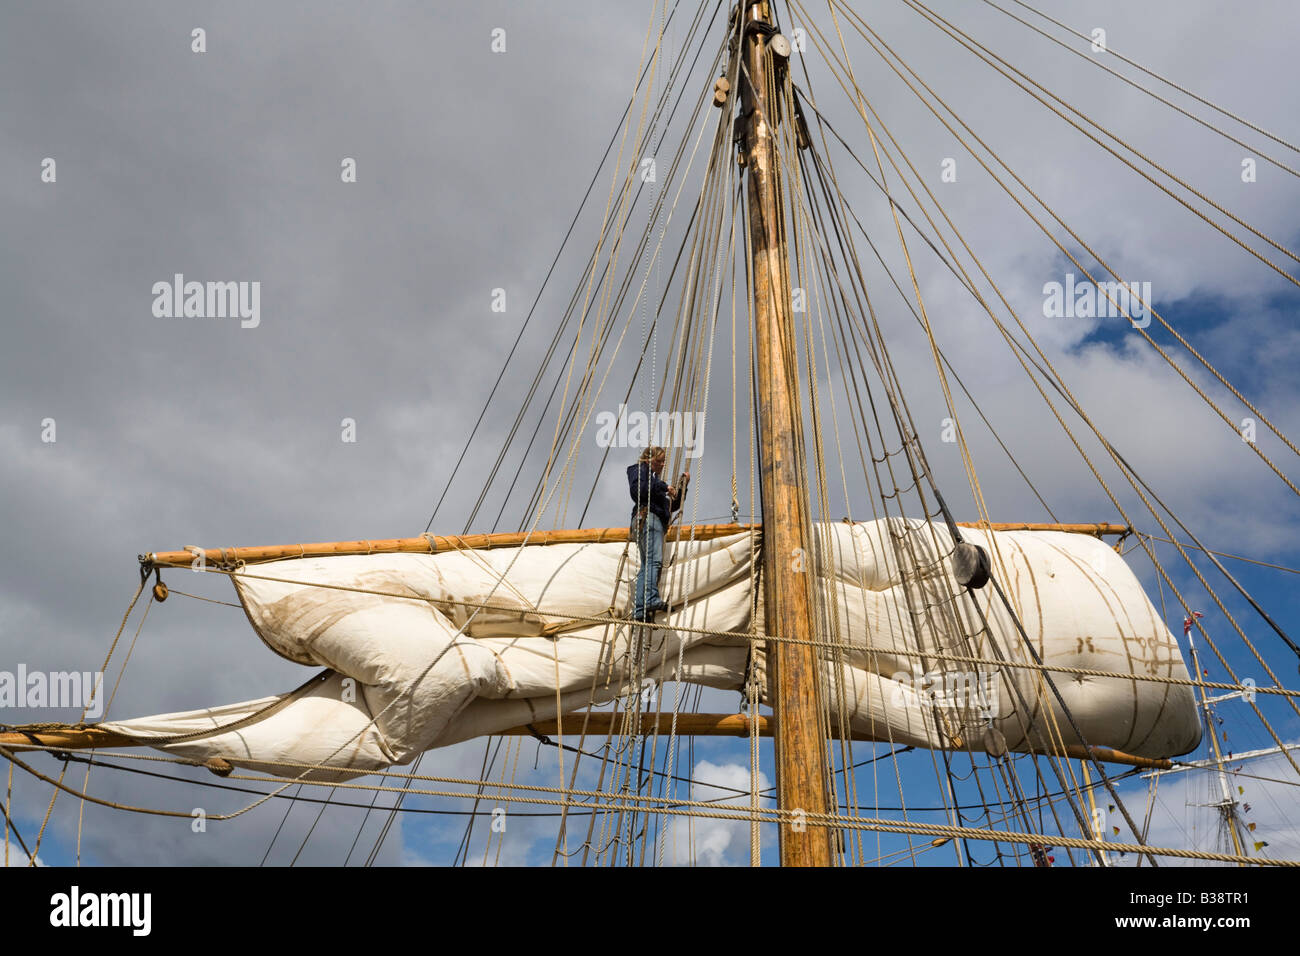 Person sorting ropes and sail high up on square rigged mast on boat in Tall Ships race sailor working - Stock Image